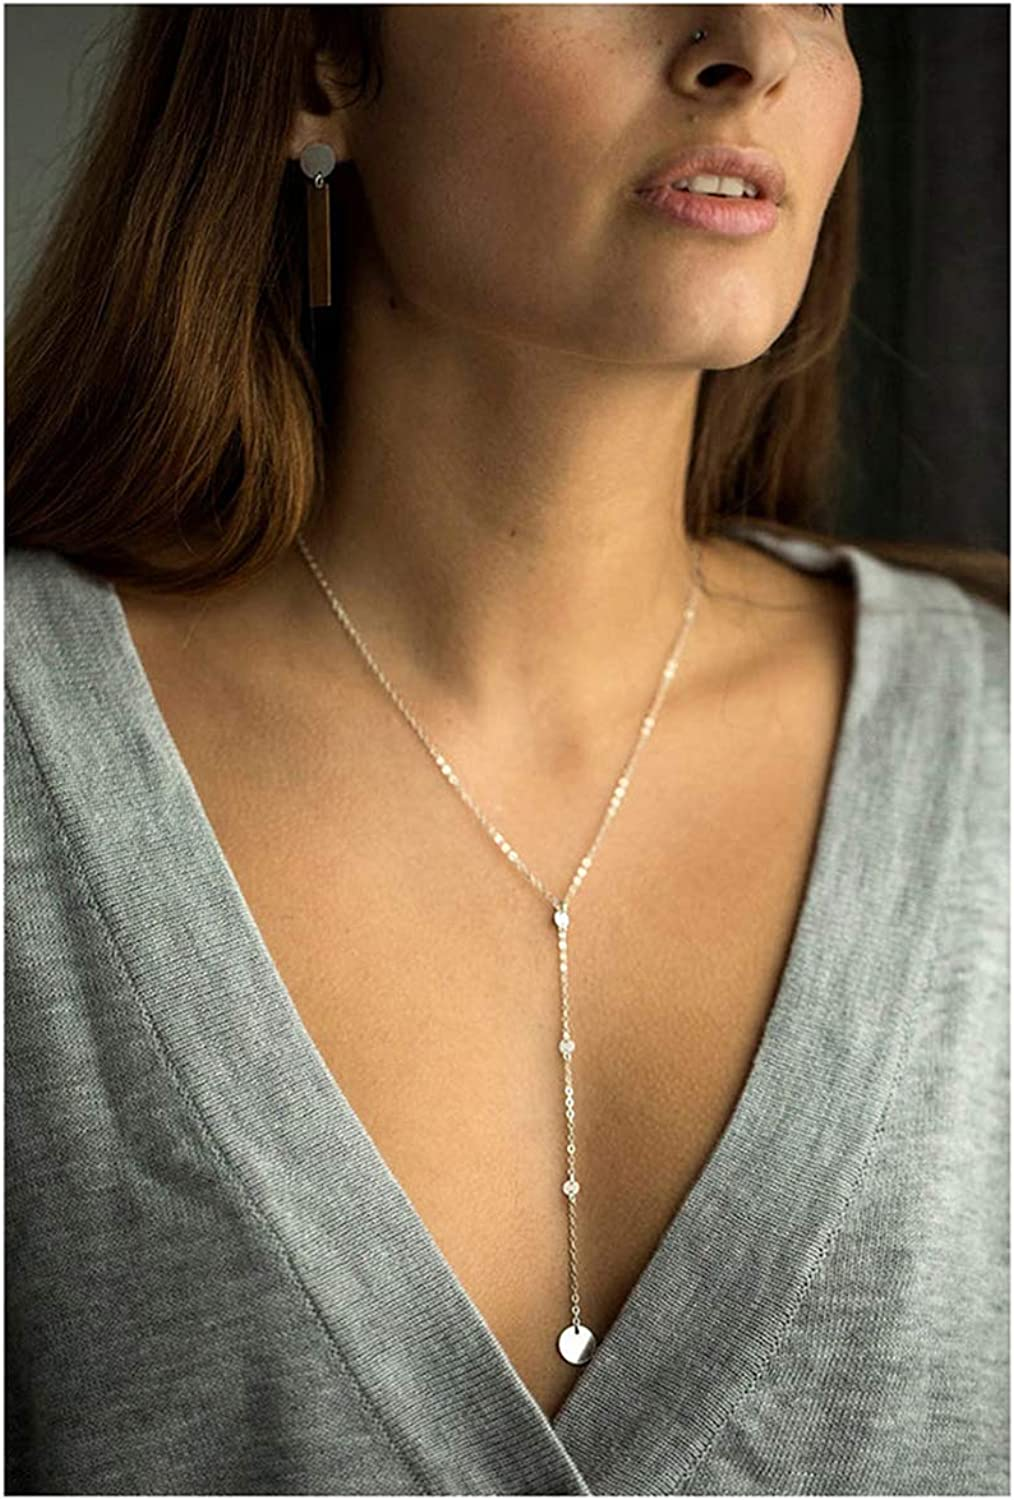 Y Necklace Dainty Disc Pendant Necklace CZ Long Lariat Chain Jewelry for Women